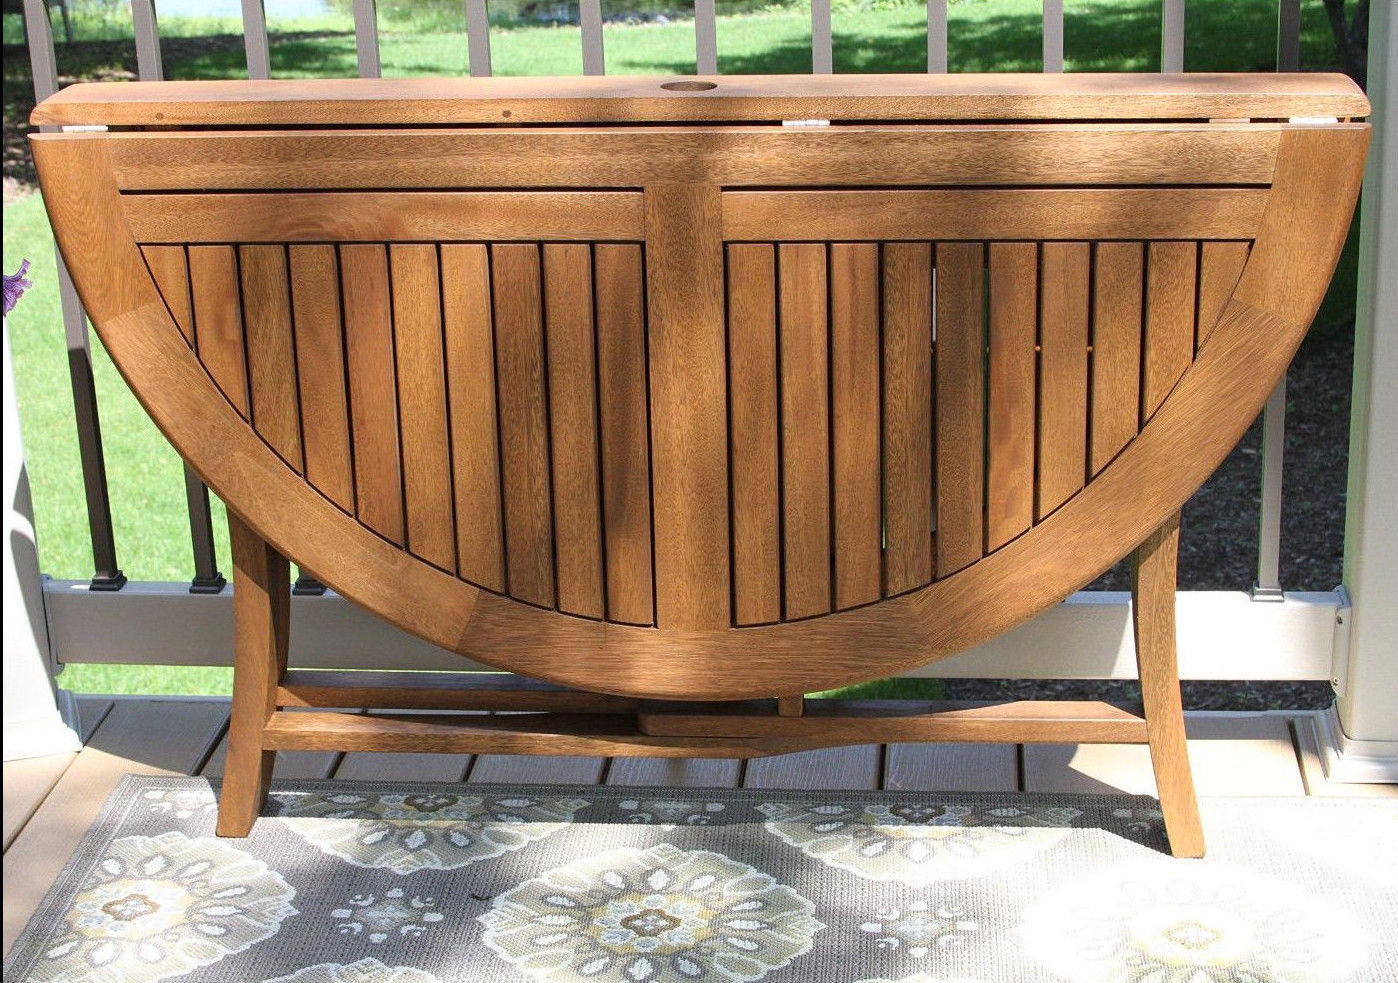 Outdoor Wood Dining Table Foldable 48 Inch Round Brown ...